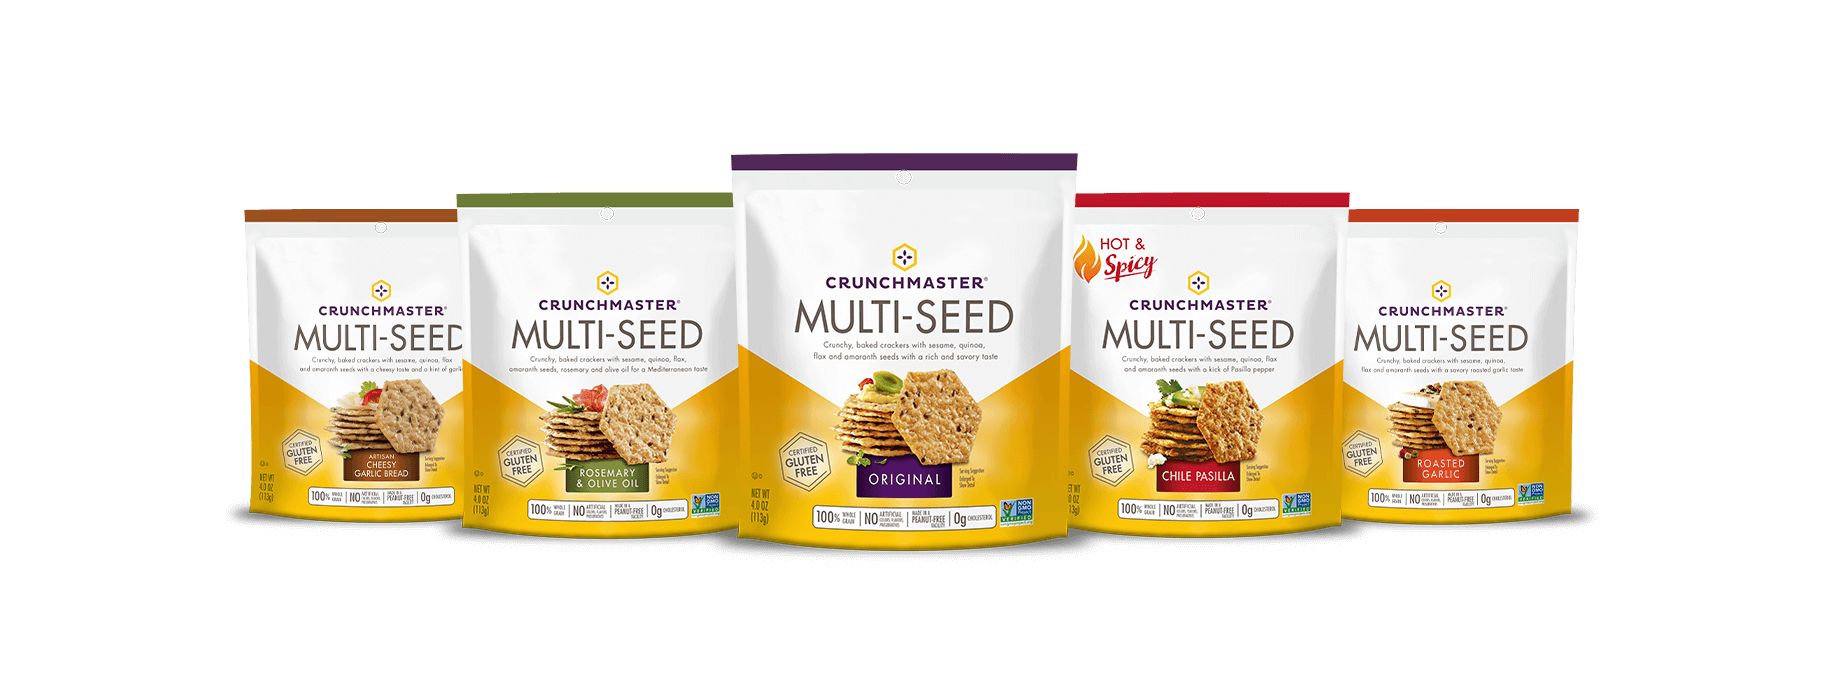 Multi-Seed Crackers - Crunchmaster